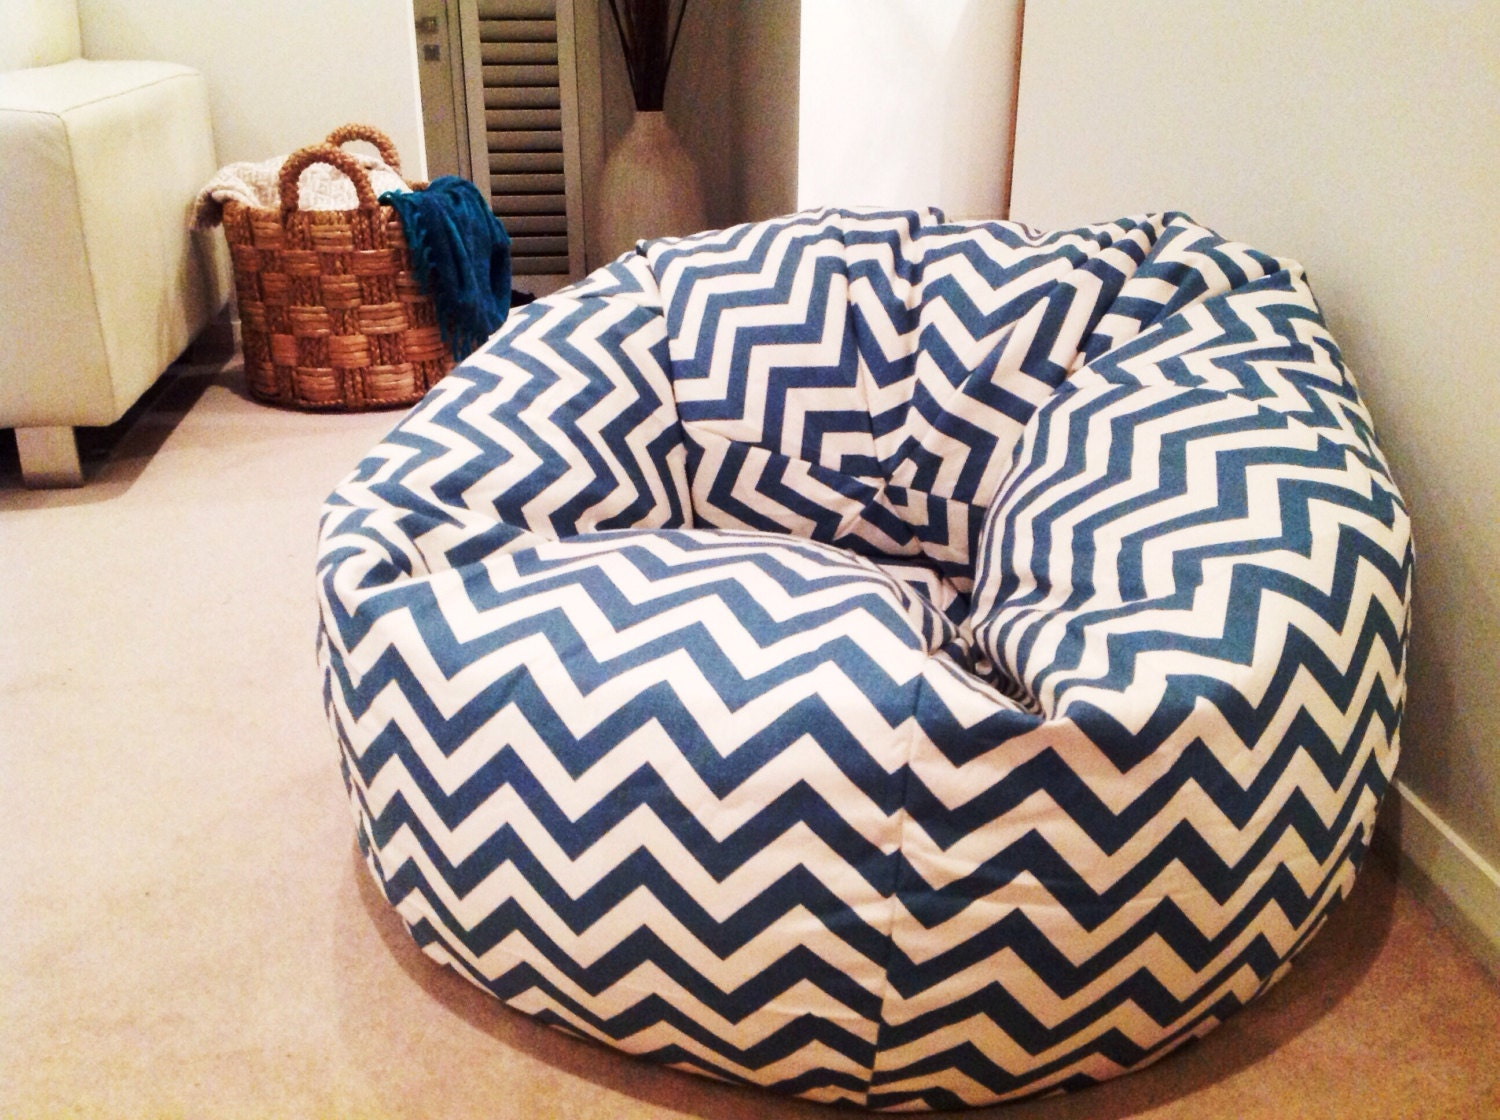 Bean bag chairs for teenage girls - Chevron Bean Bag Cover Adults Bean Bag Kids Bean Bag Zig Zag Chevron Design Denim